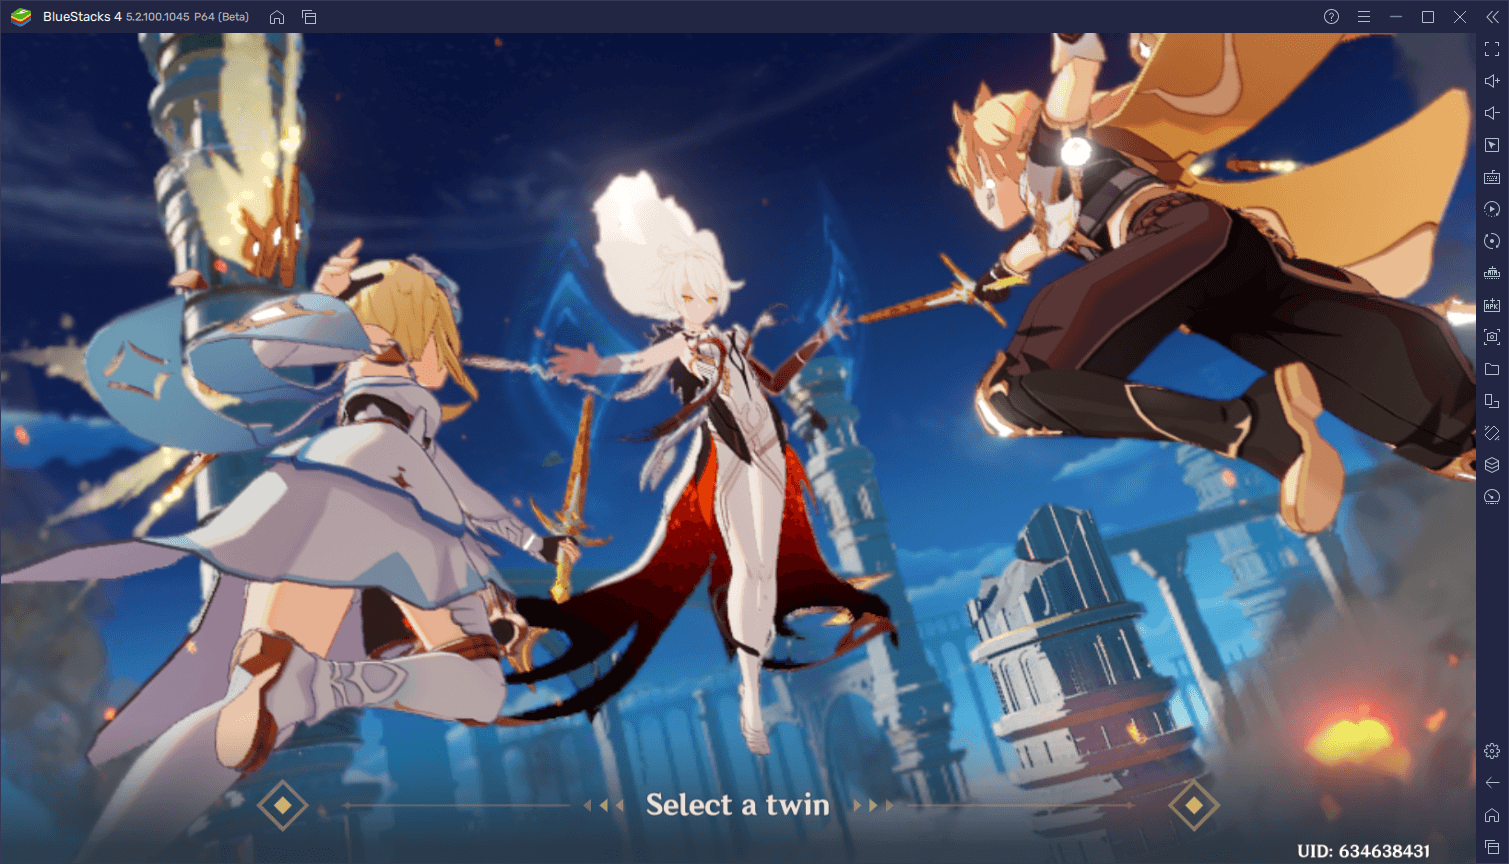 How to Play Genshin Impact on any PC with BlueStacks